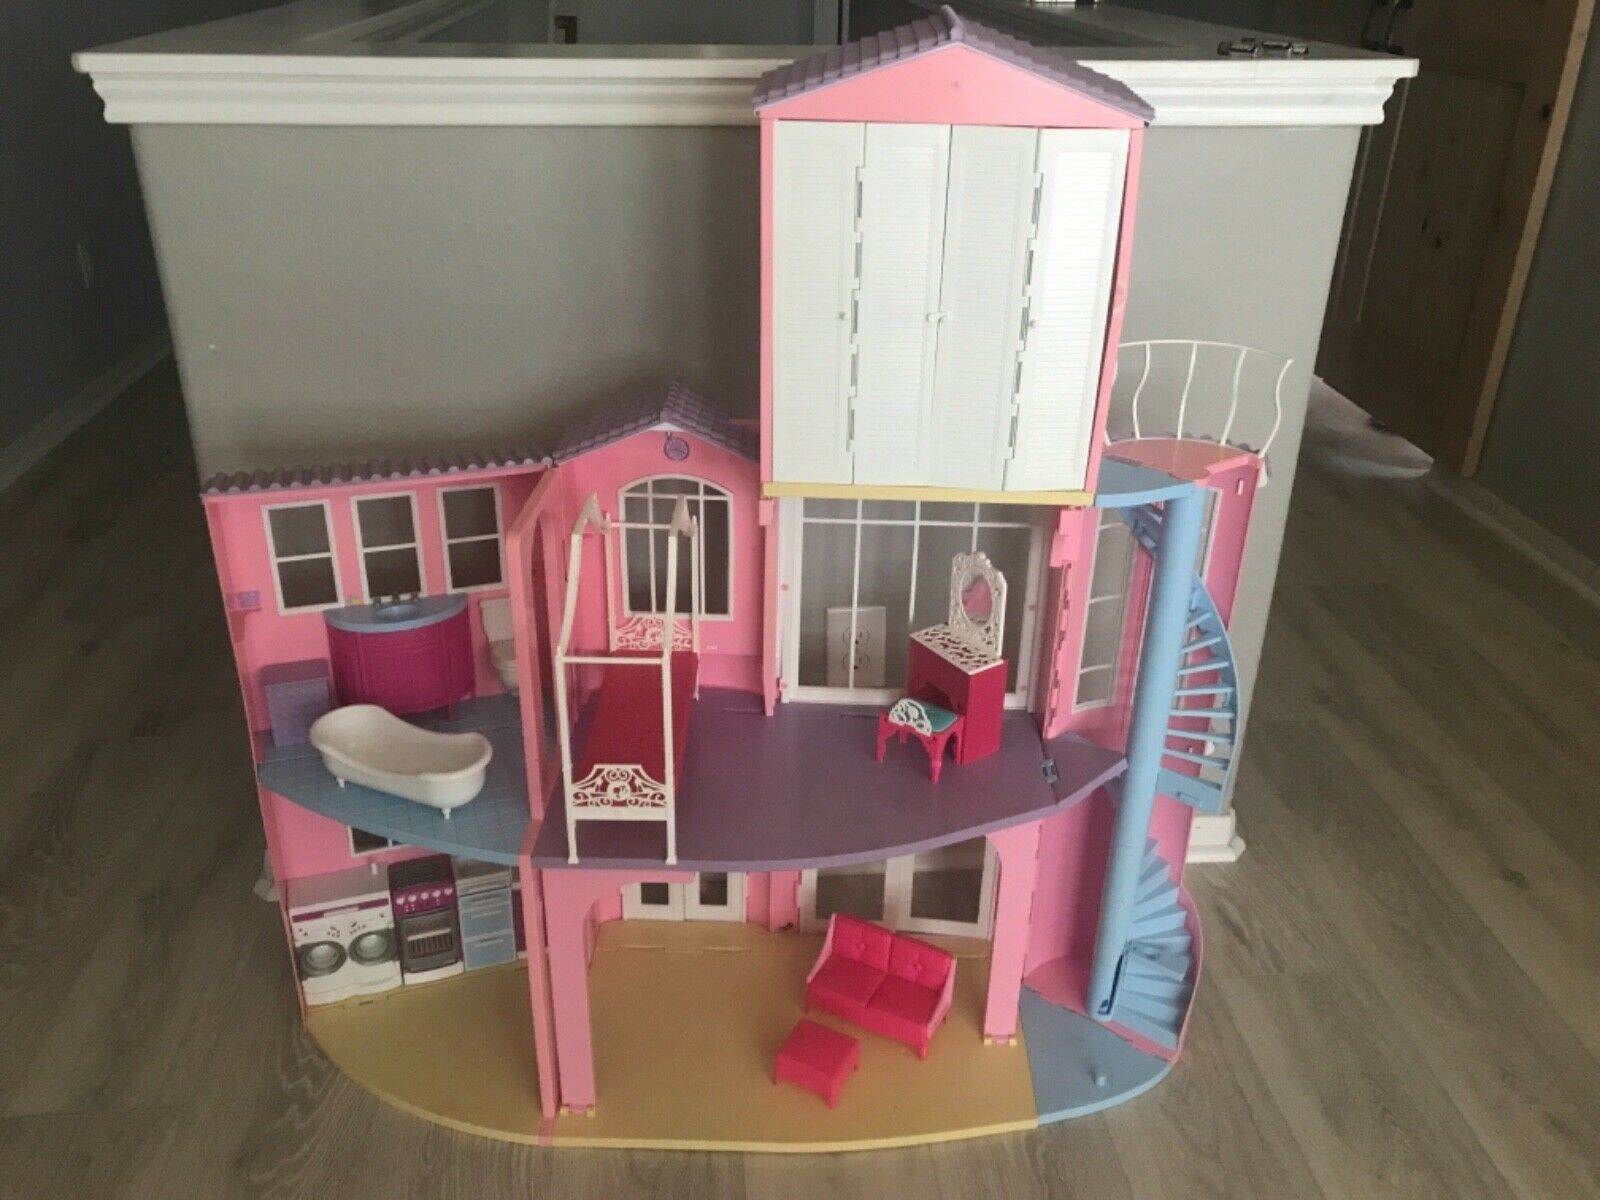 Photo Mattel Barbie 3-Story Dream House Playset 2006 Vintage Foldable Working SOUNDS!!